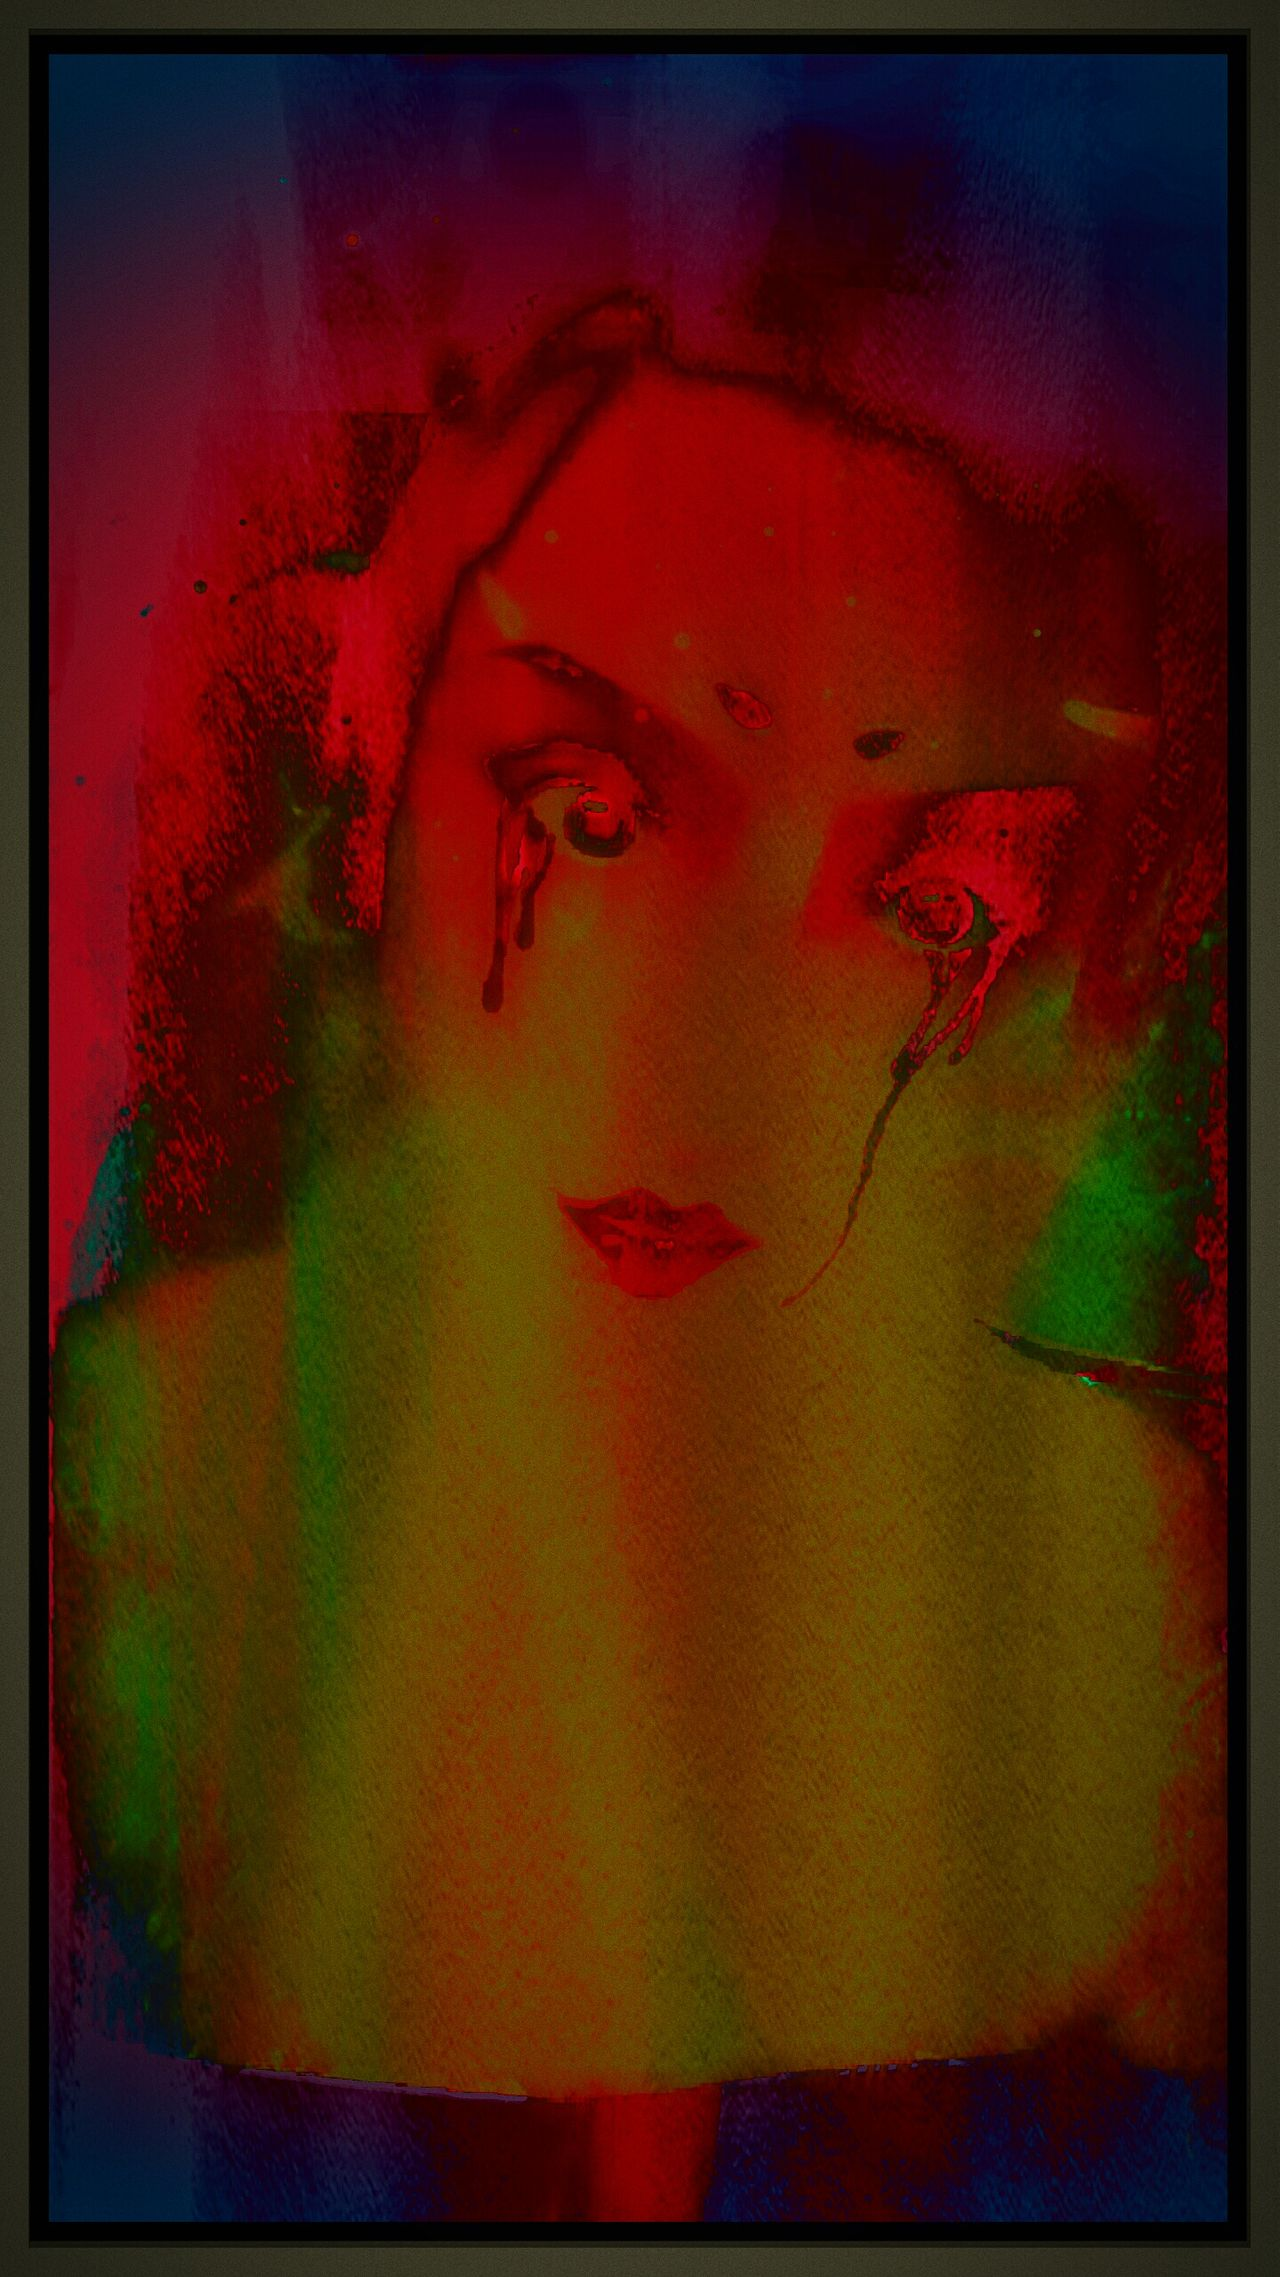 Twilight Lovely Bright Colors In Darkness Oddity Sexygirl Emo Bizarre Art The Twilight Zone Night Gallery Darkartist Mercurial Foreboding Horrorart Nightmare Nightscape Art, Drawing, Creativity Darkart Creative Light And Shadow Darkness And Light Shadows & Lights Grunge Art Trippy